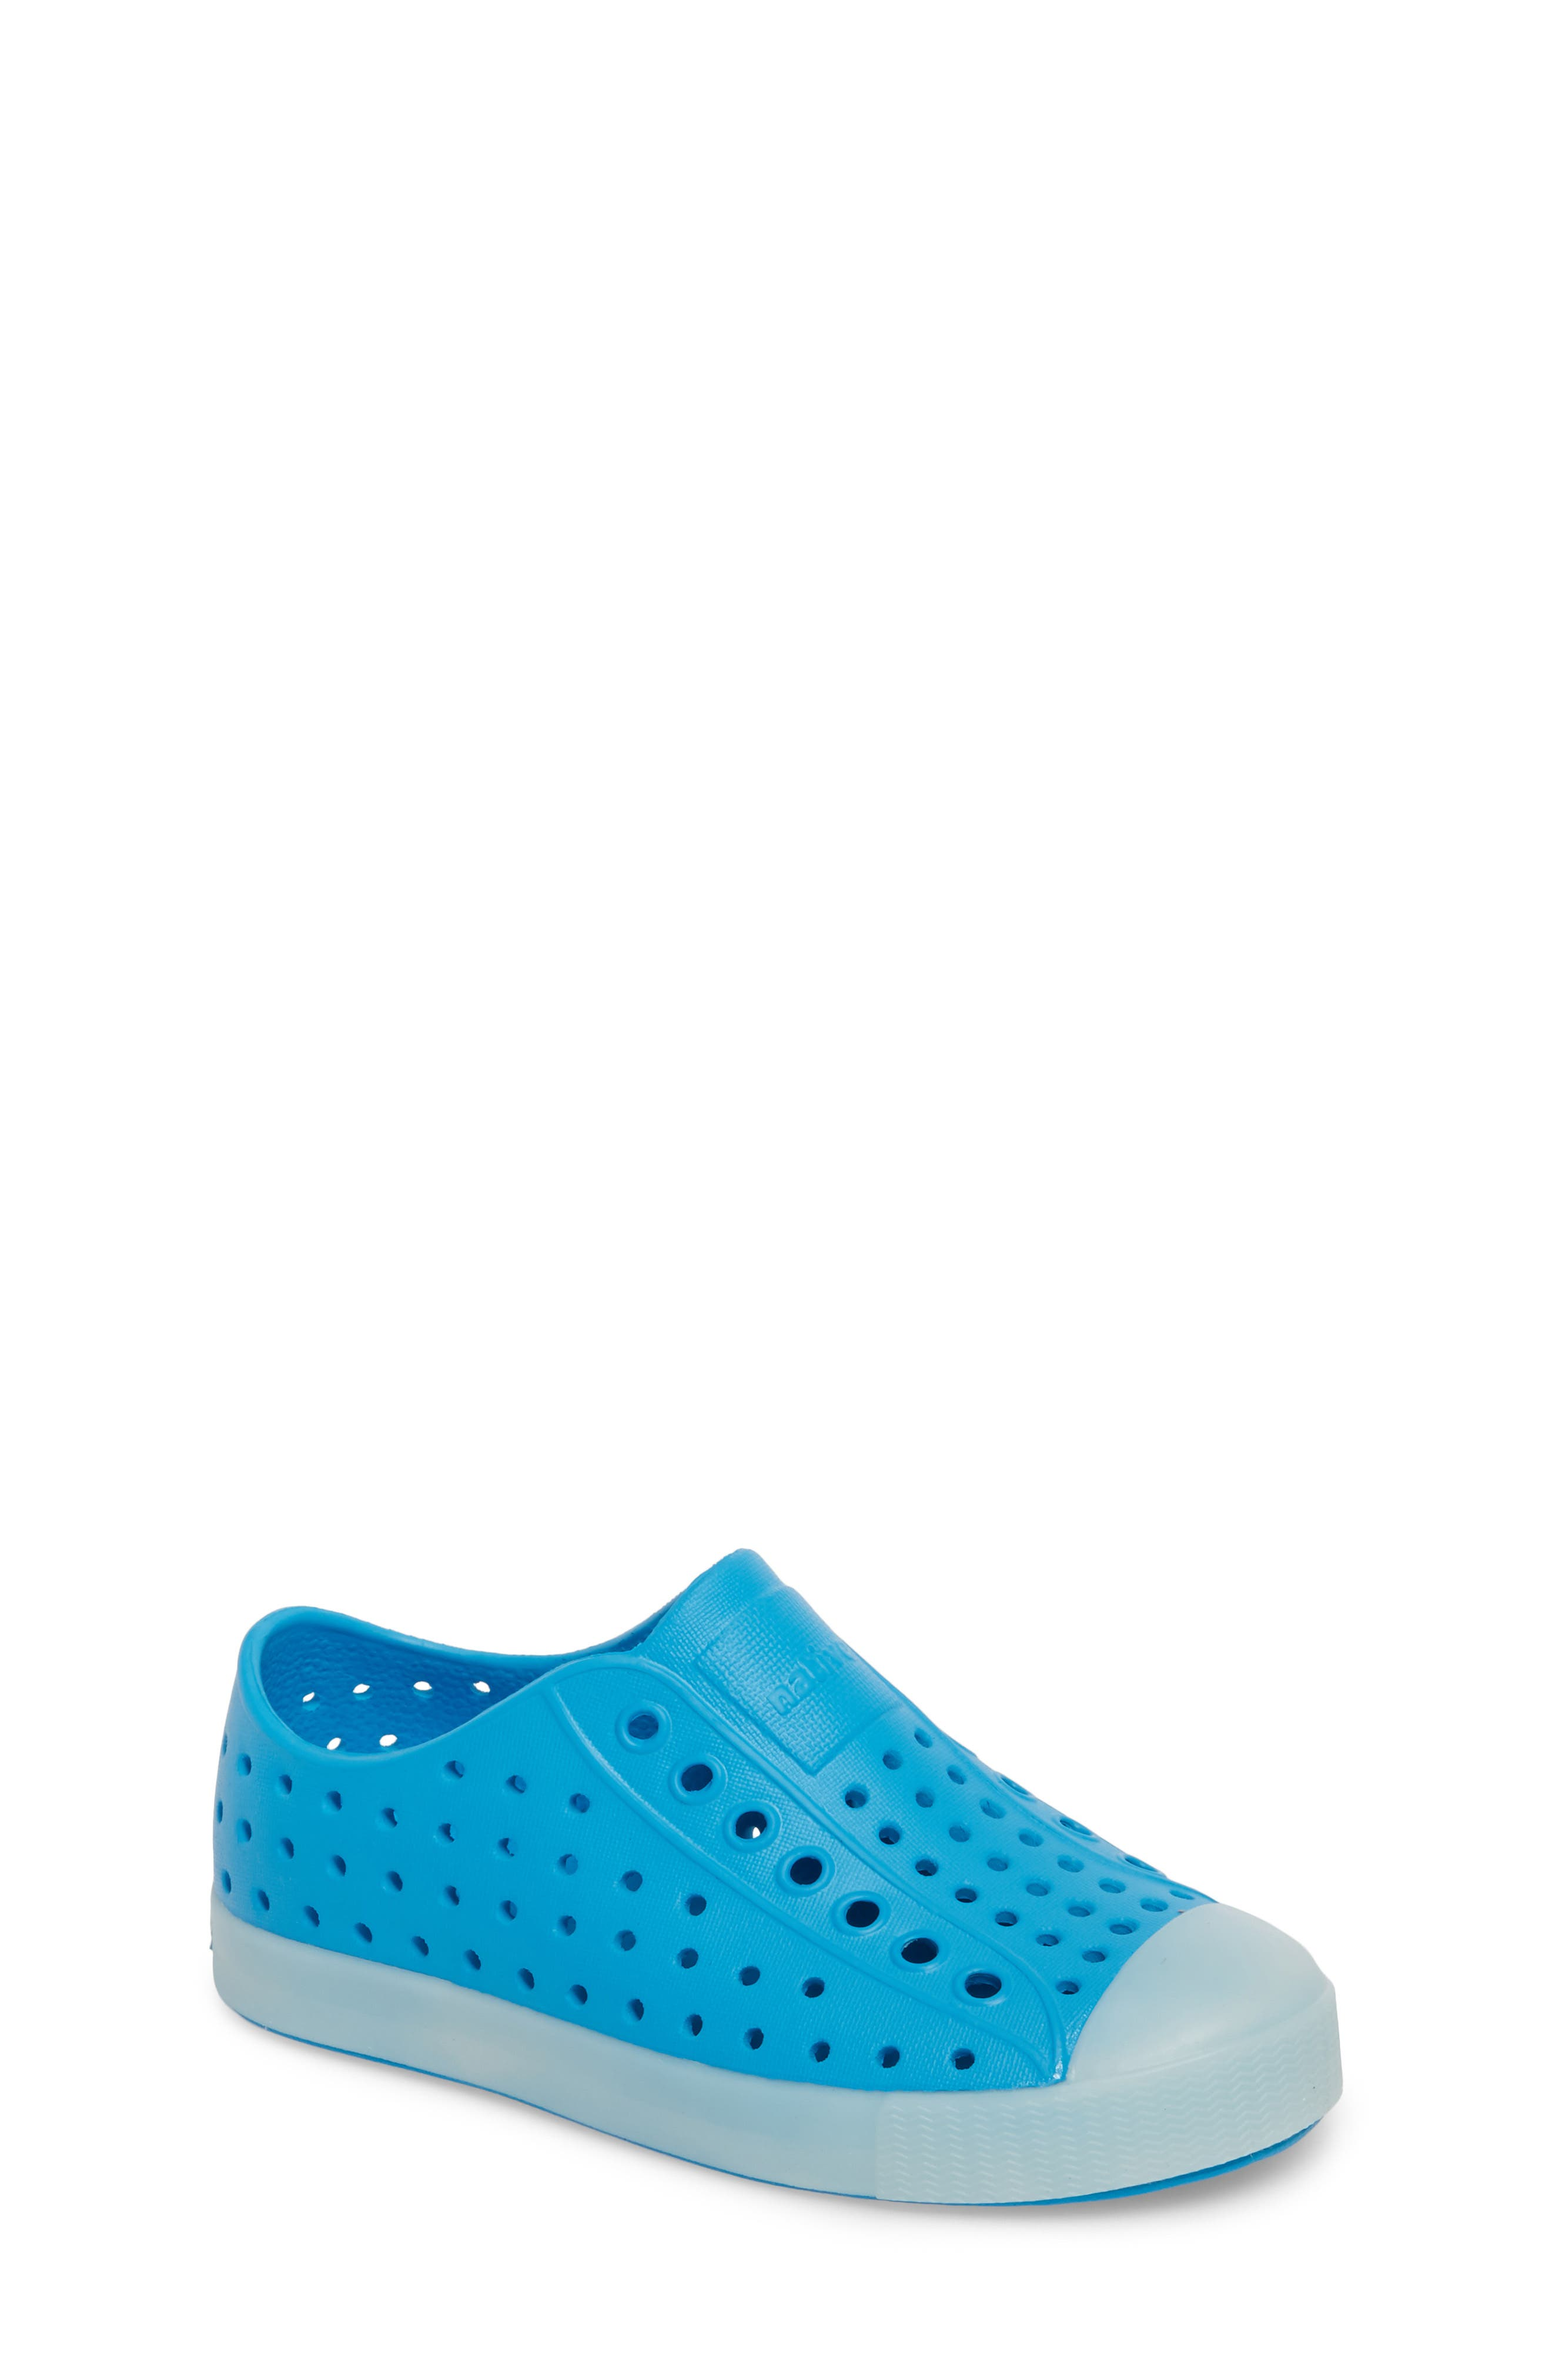 Native Shoes Jefferson - Glow in the Dark Sneaker (Walker, Toddler & Little Kid)